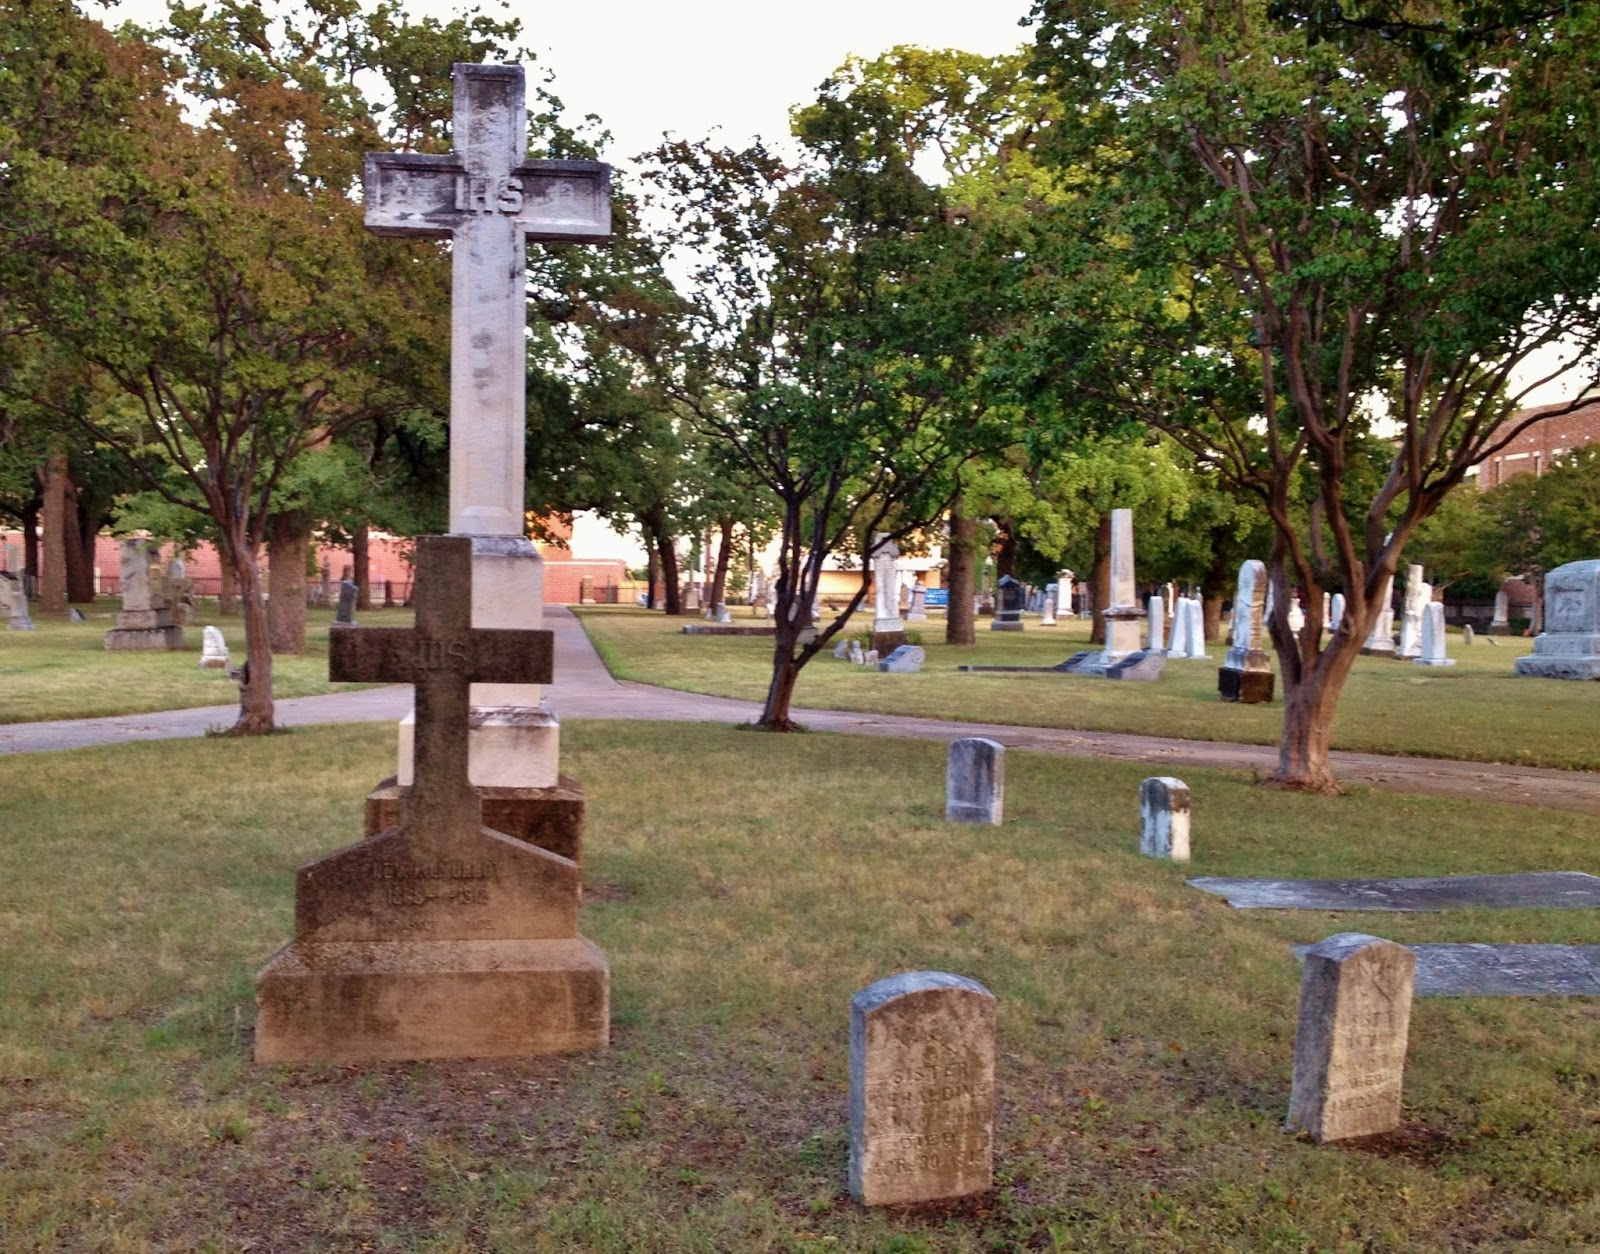 The graves pictured are part of the religious circle in calvary cemetery